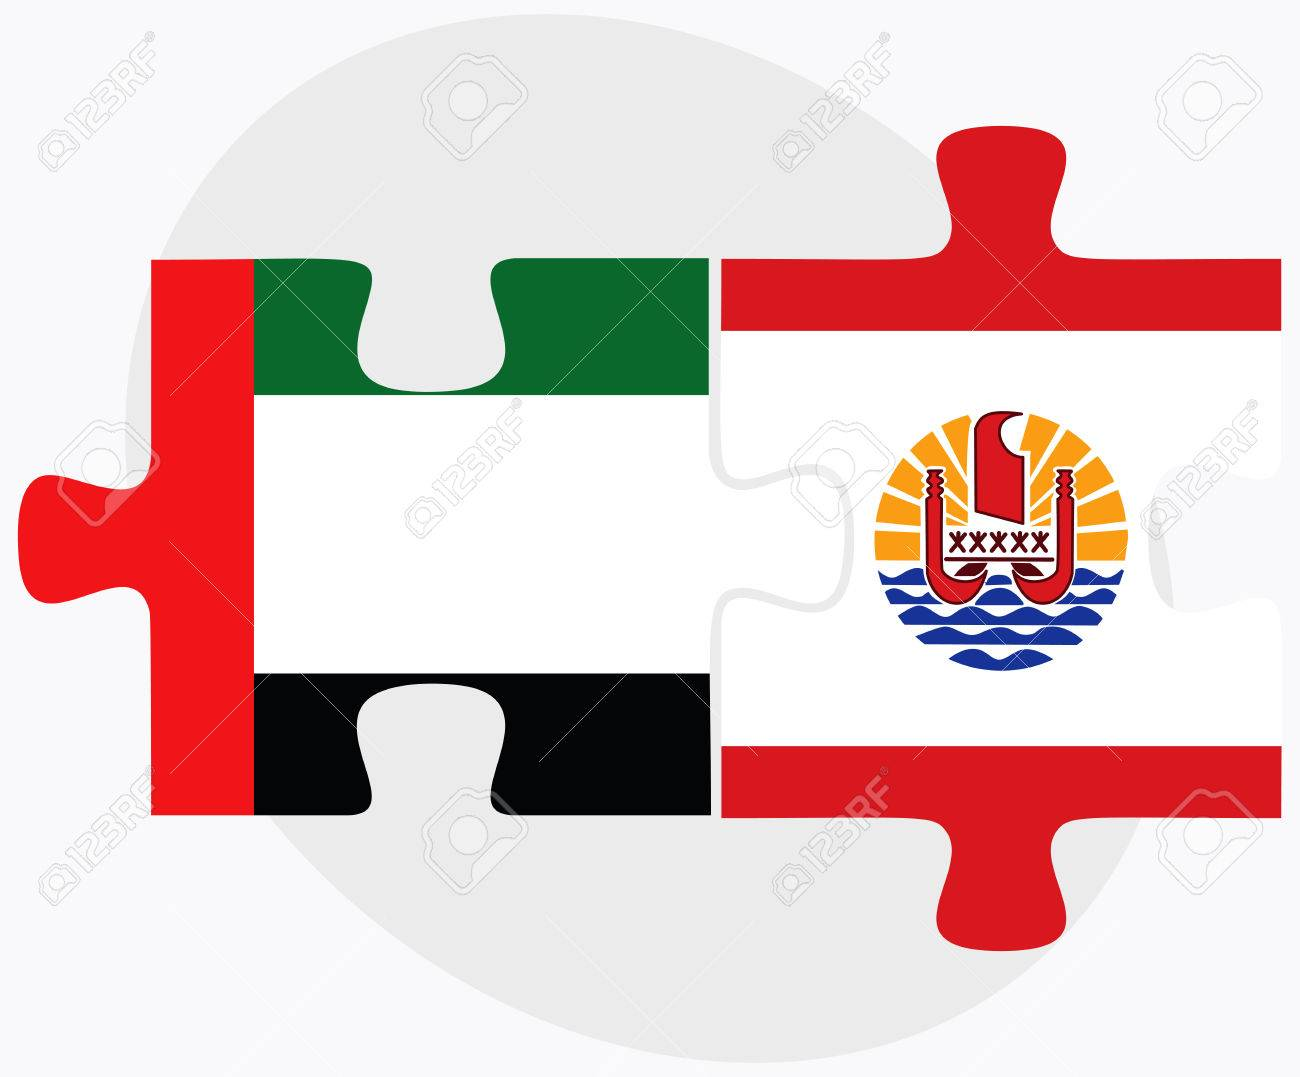 United Arab Emirates And French Polynesia Flags In Puzzle Isolated Royalty Free Cliparts Vectors And Stock Illustration Image 47587682